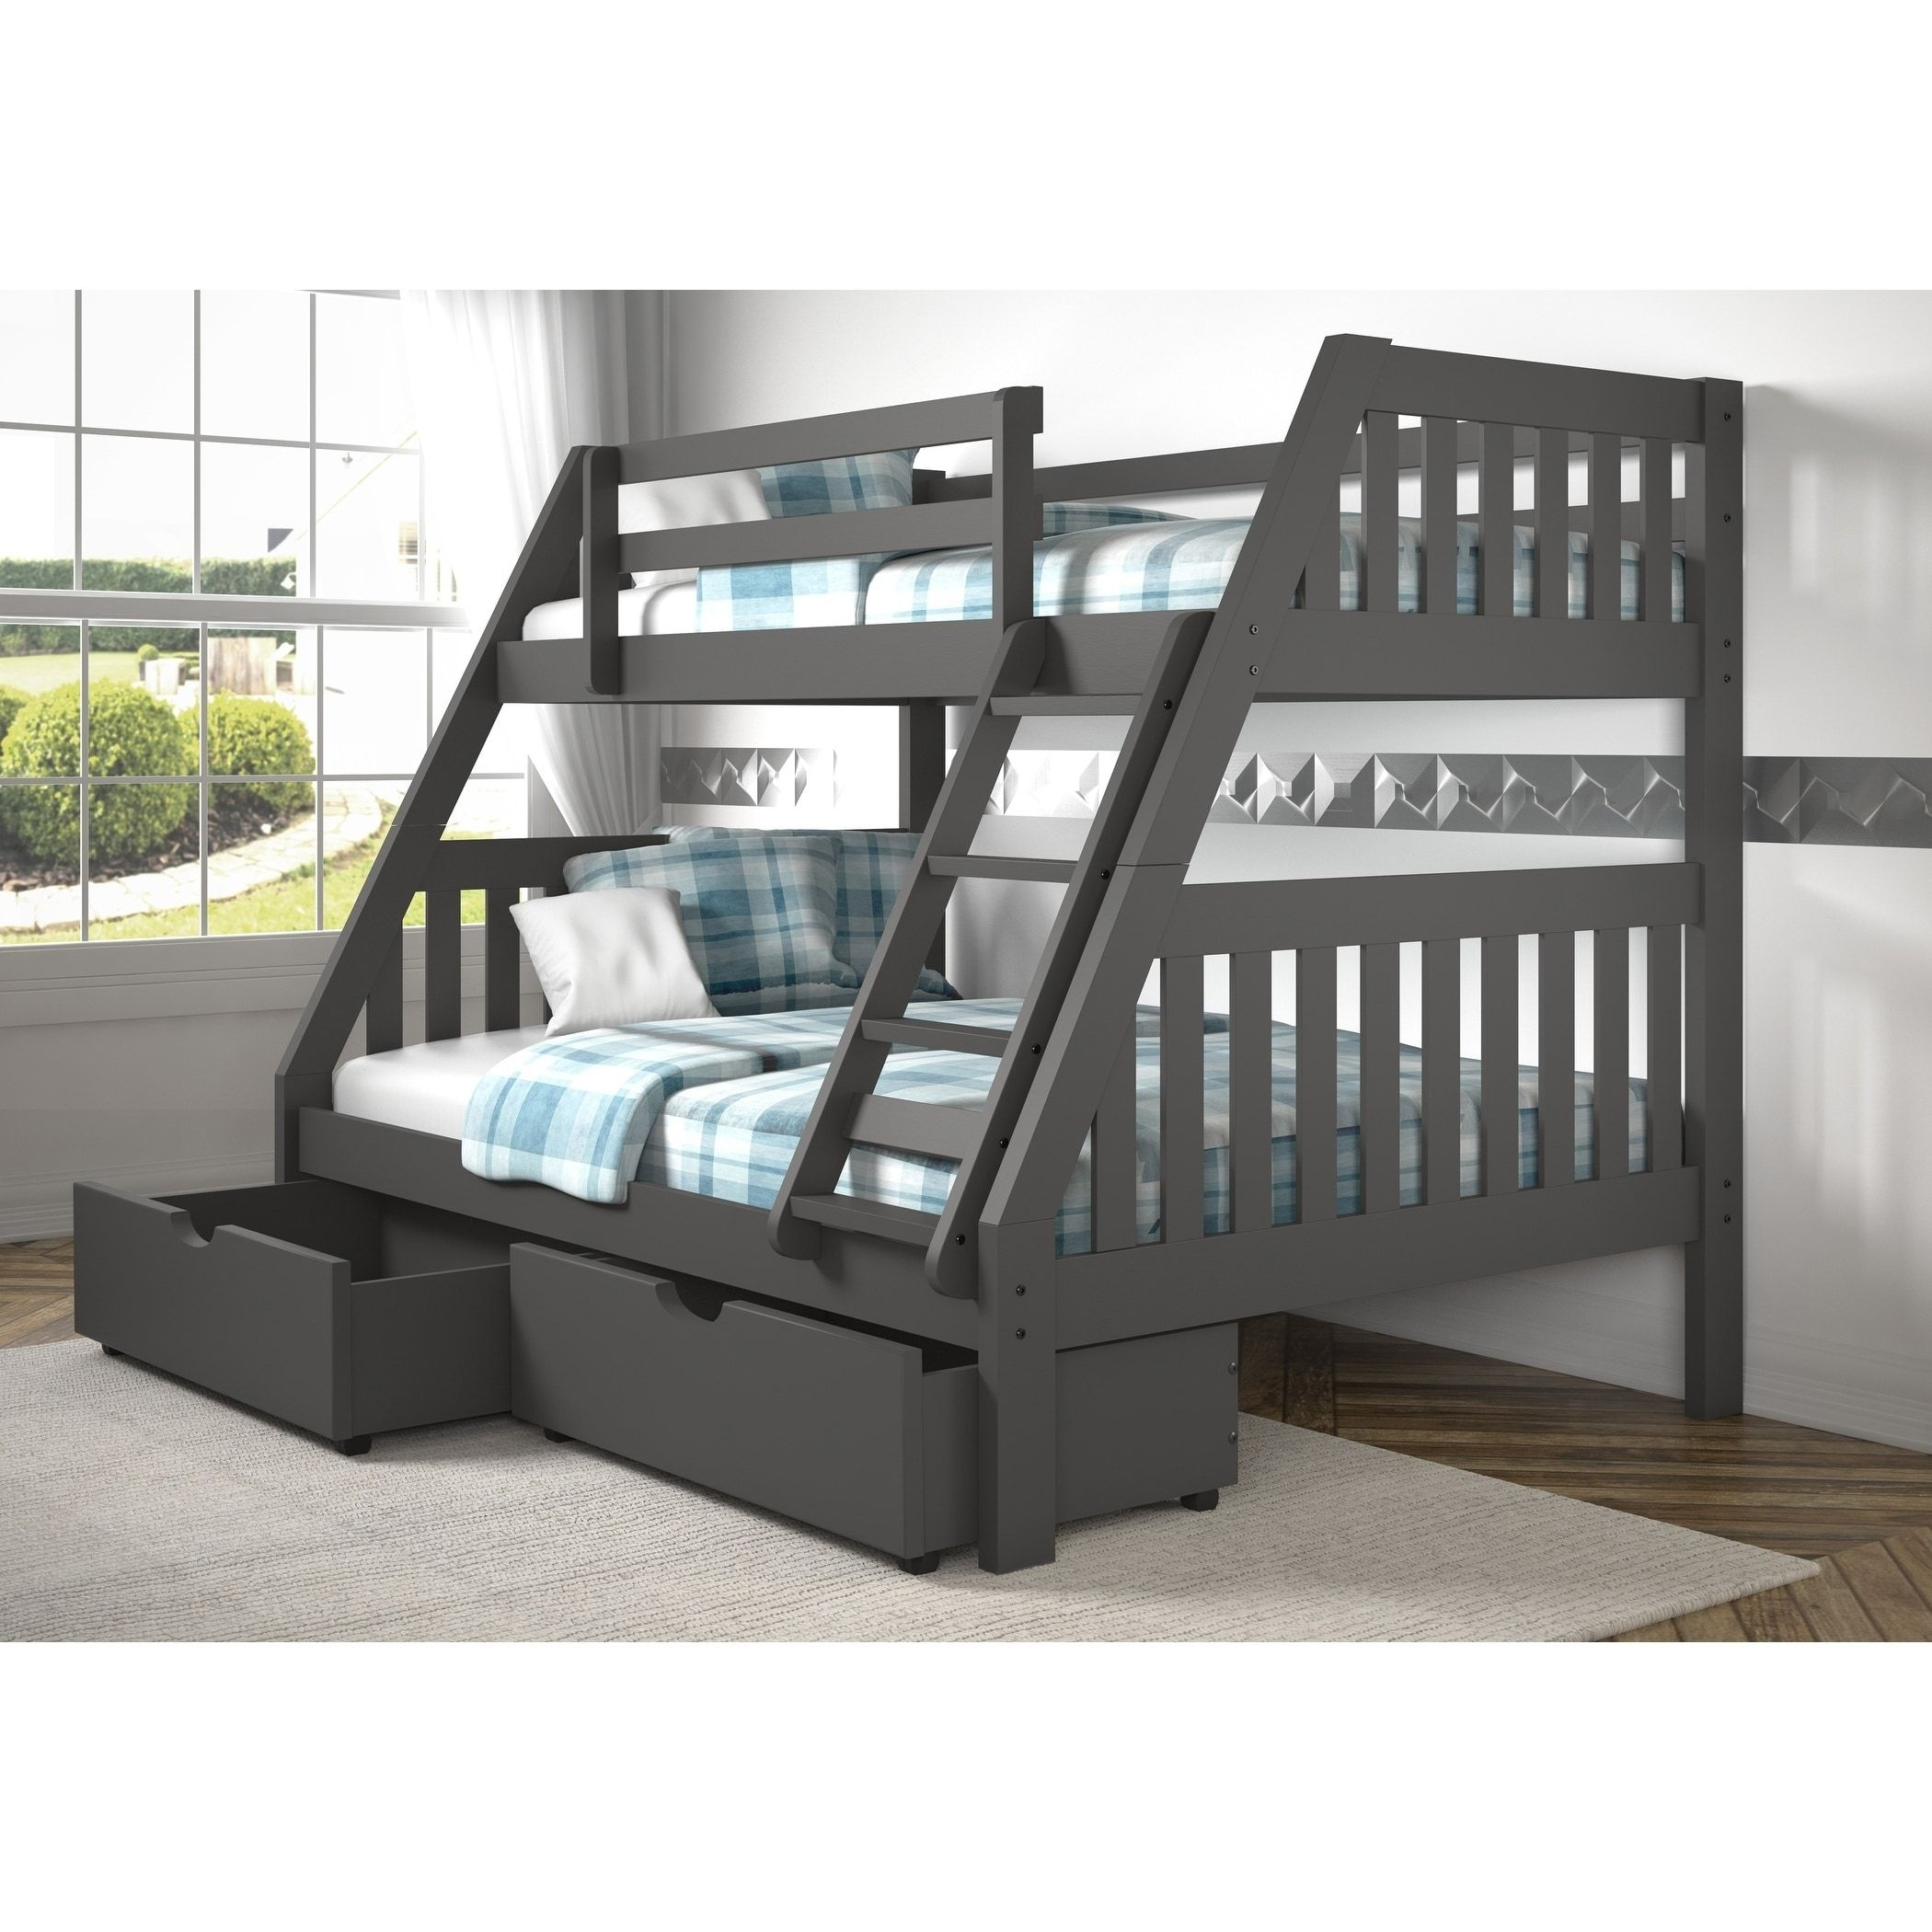 Tuffing loft bed ideas  Twin over Full Mission Bunk Bed in Dark Grey Finish Storage Bed